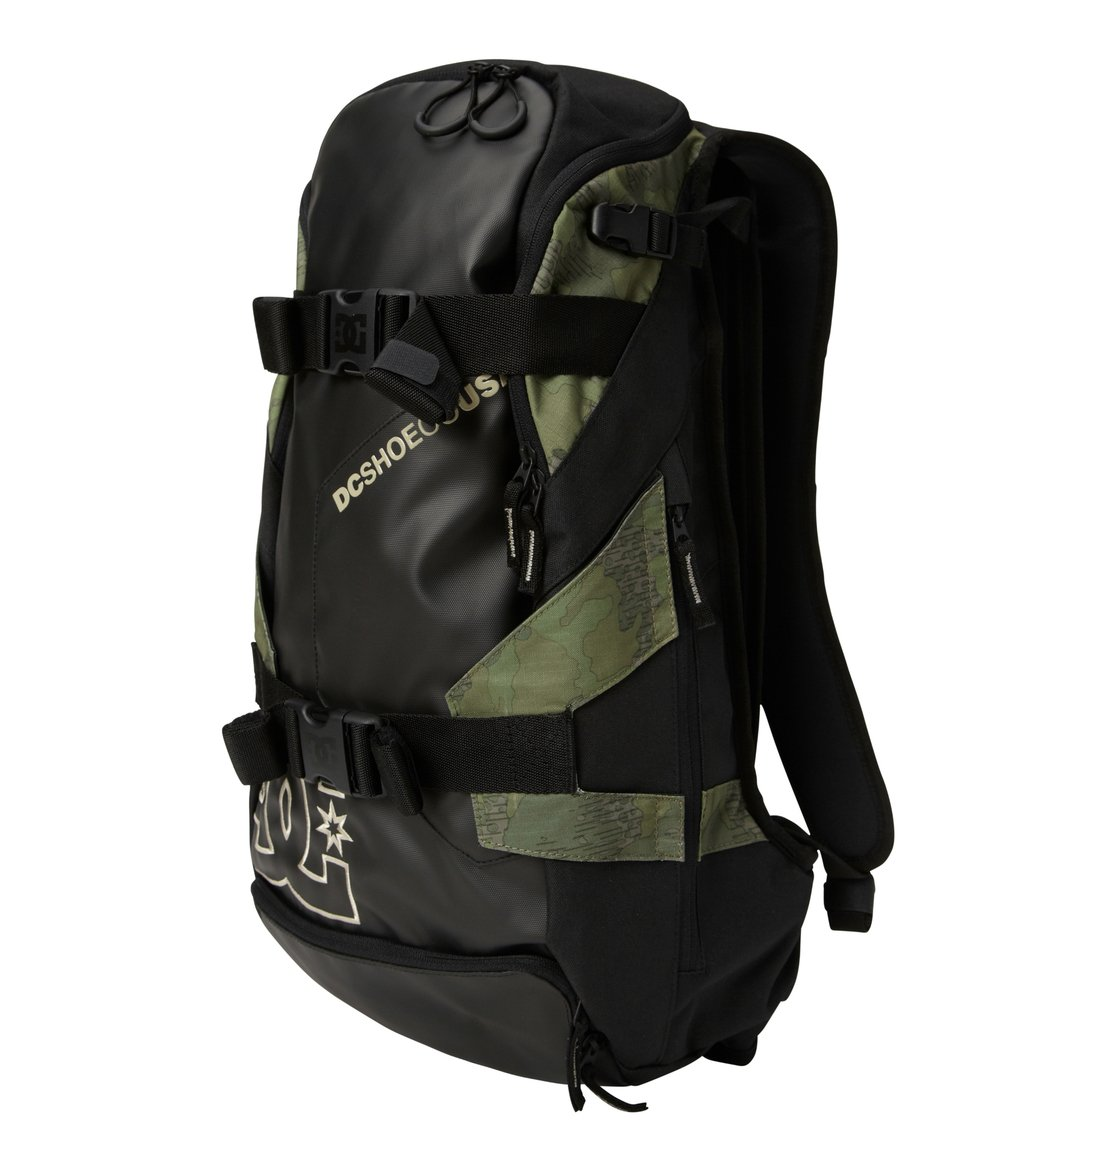 f84d1376a3acc 1 Men's Absoluter 15 Backpack EDYBP00018 DC Shoes